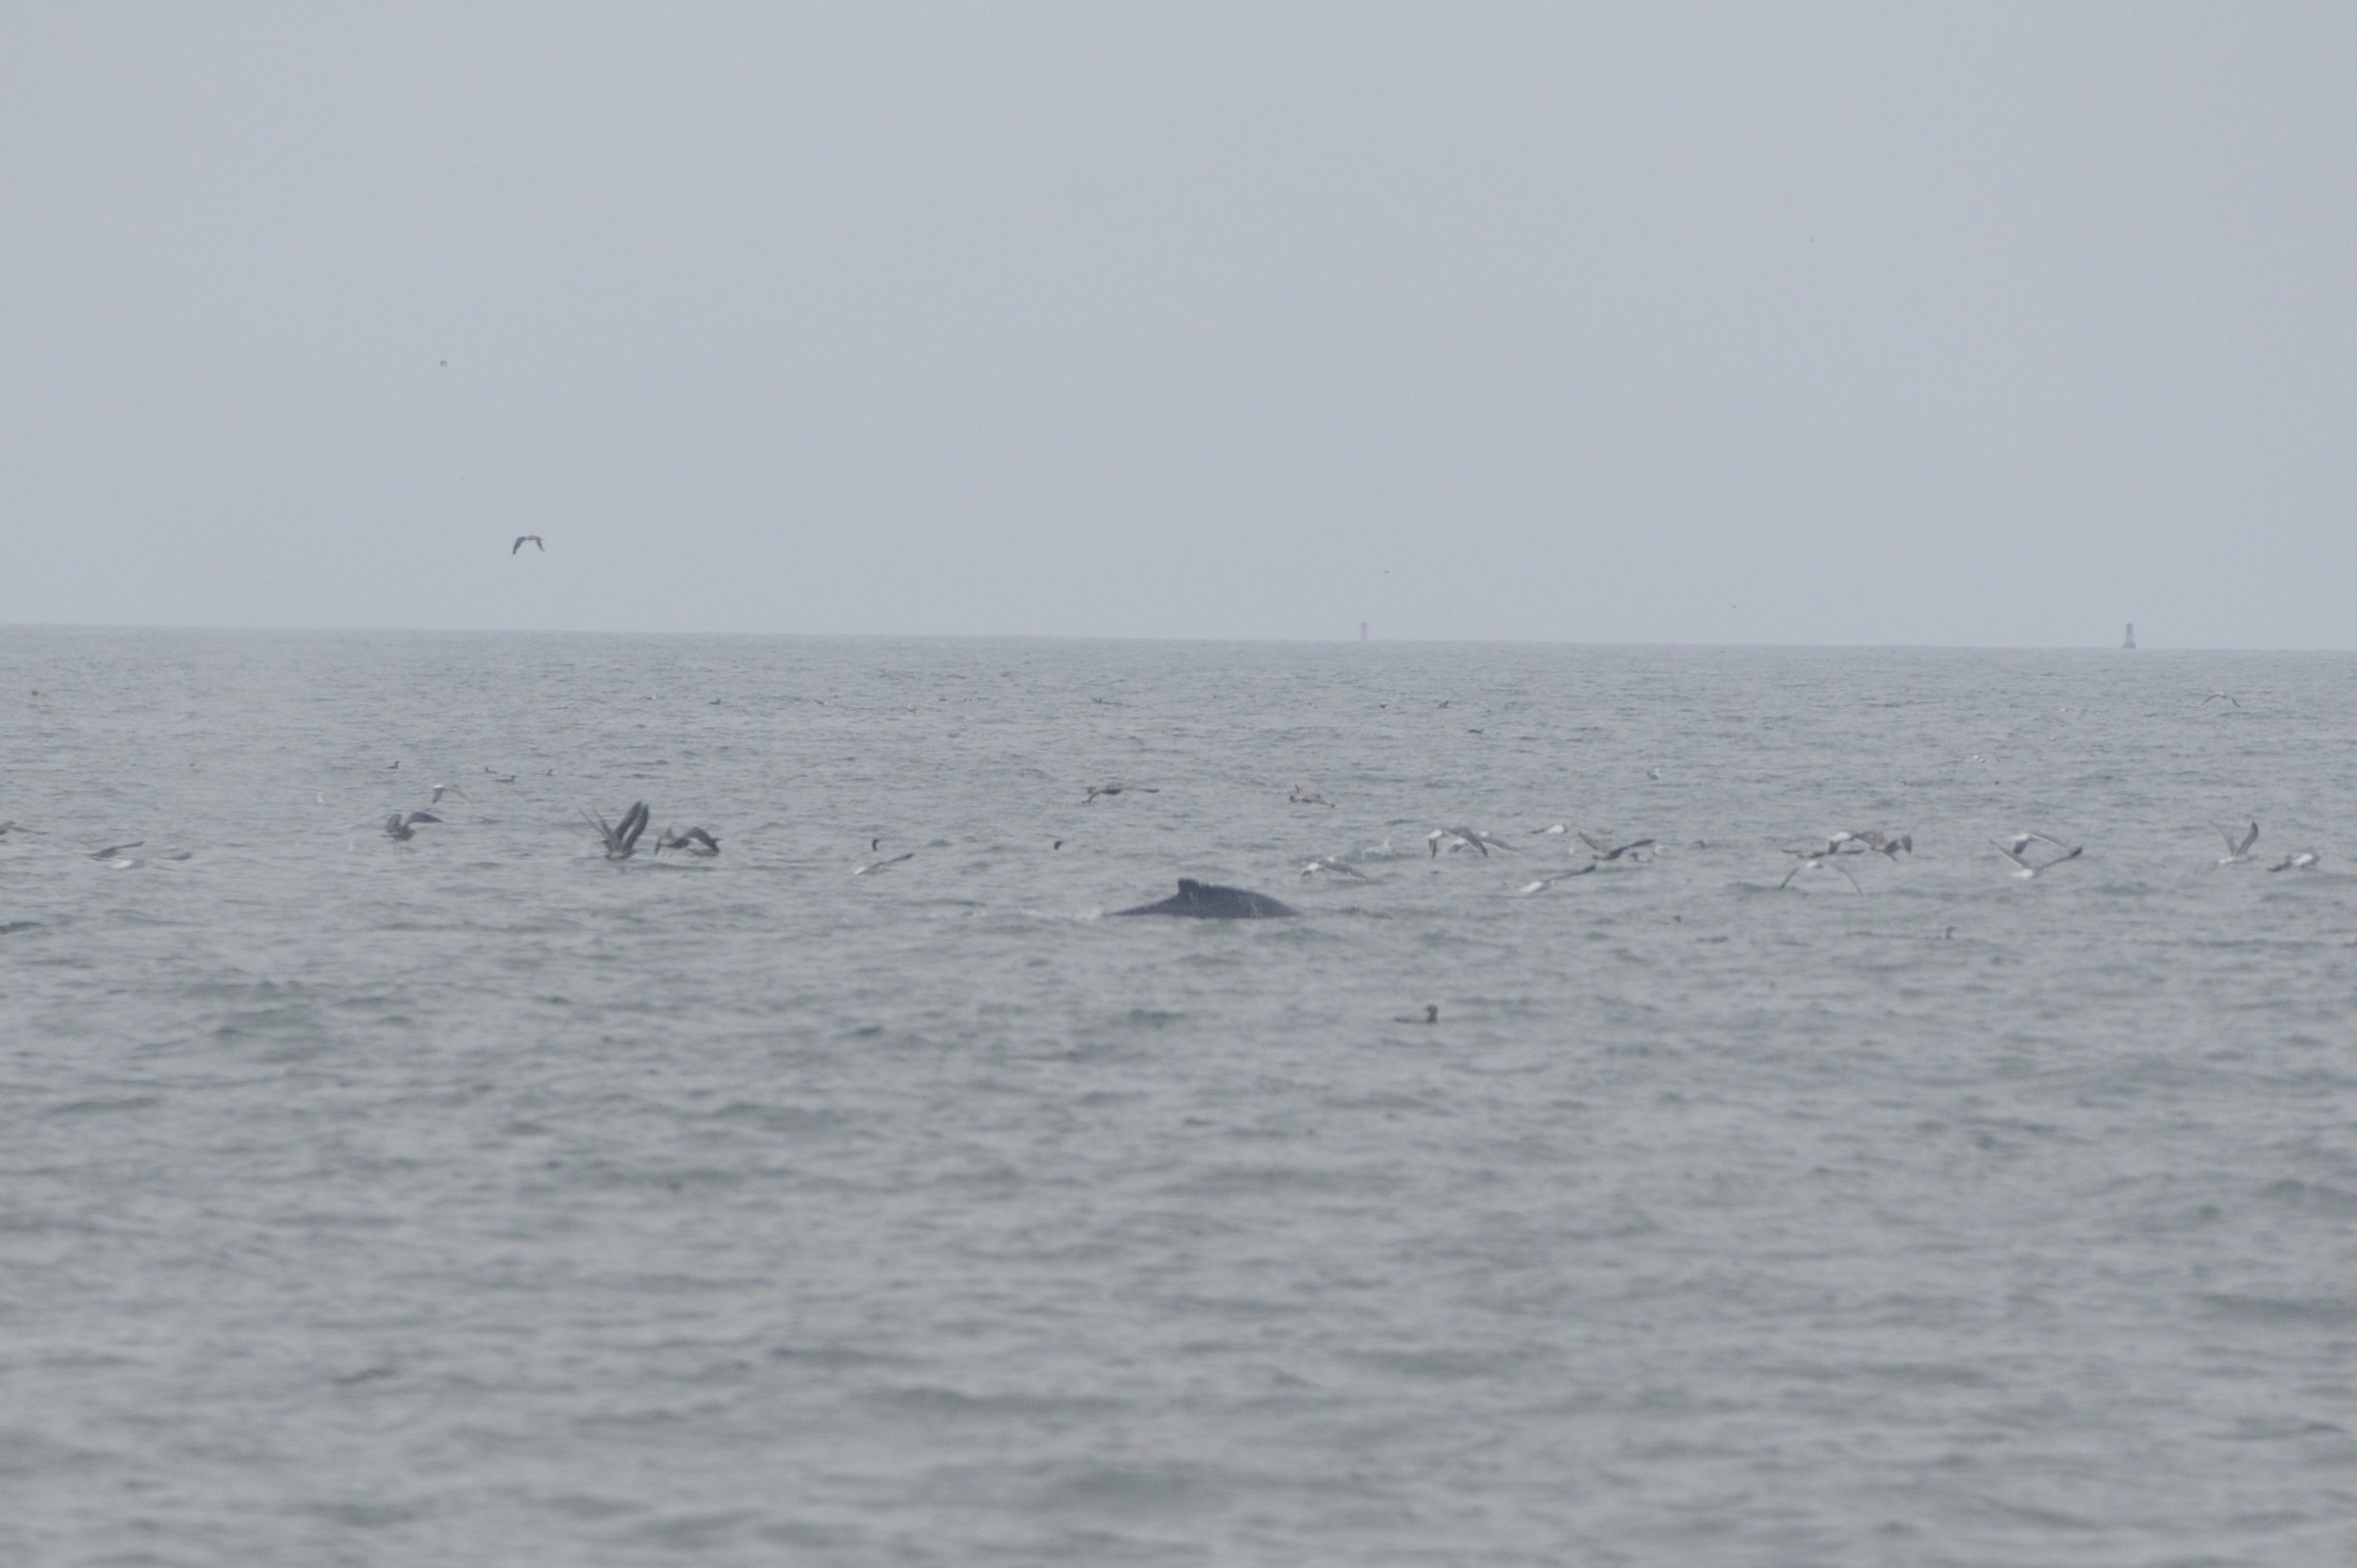 Whale surfacing in a large group of birds.